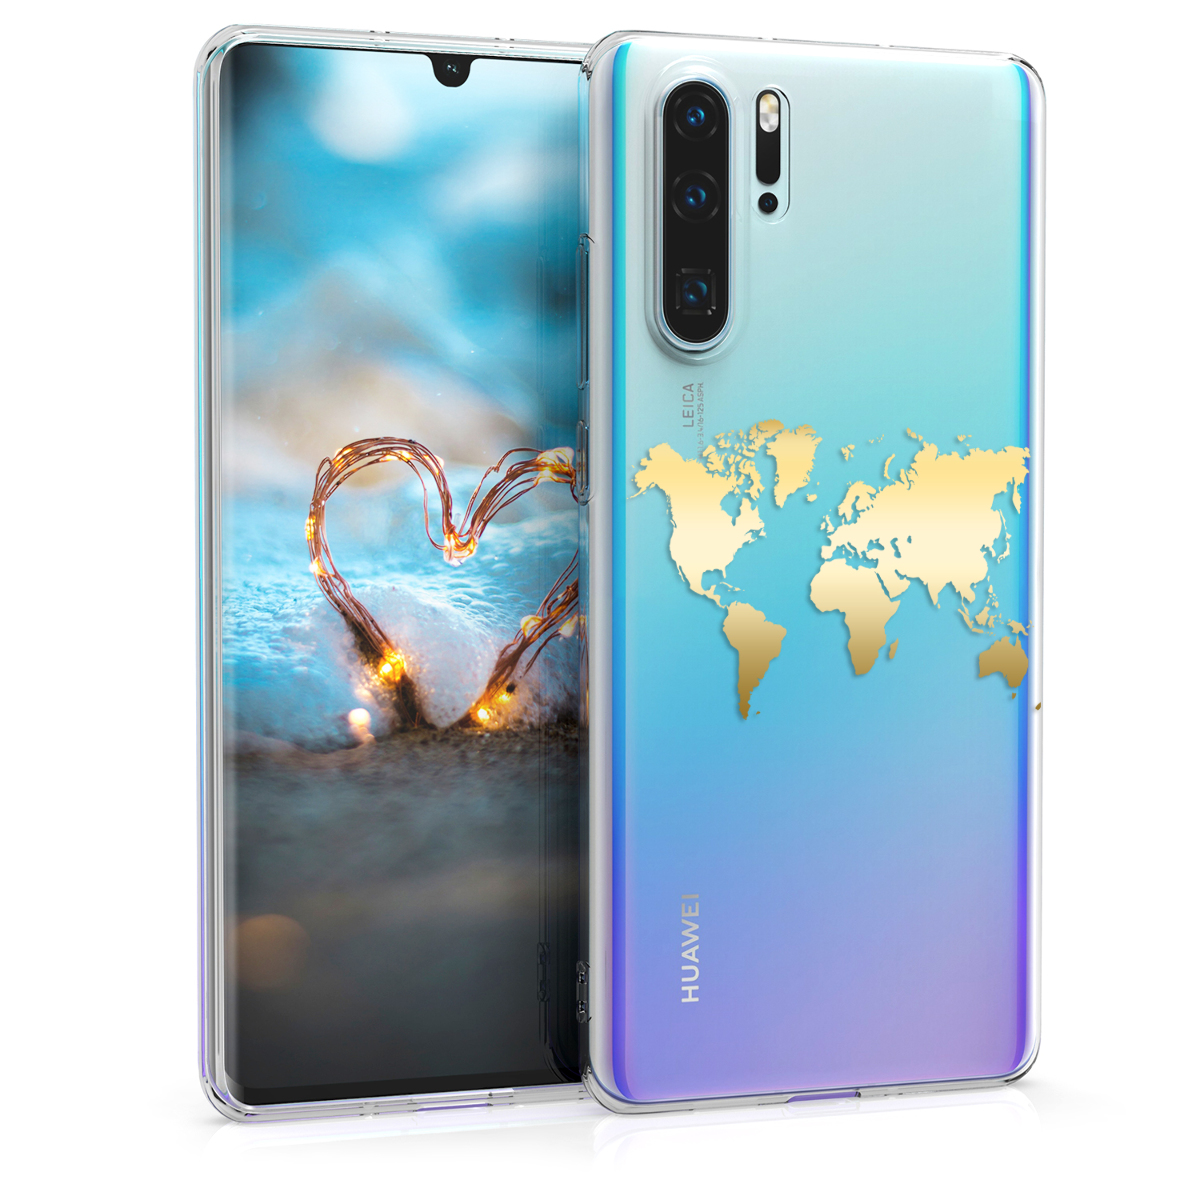 KW Θήκη Σιλικόνης Huawei P30 Pro - Crystal Clear - Gold / Transparent (49256.02)